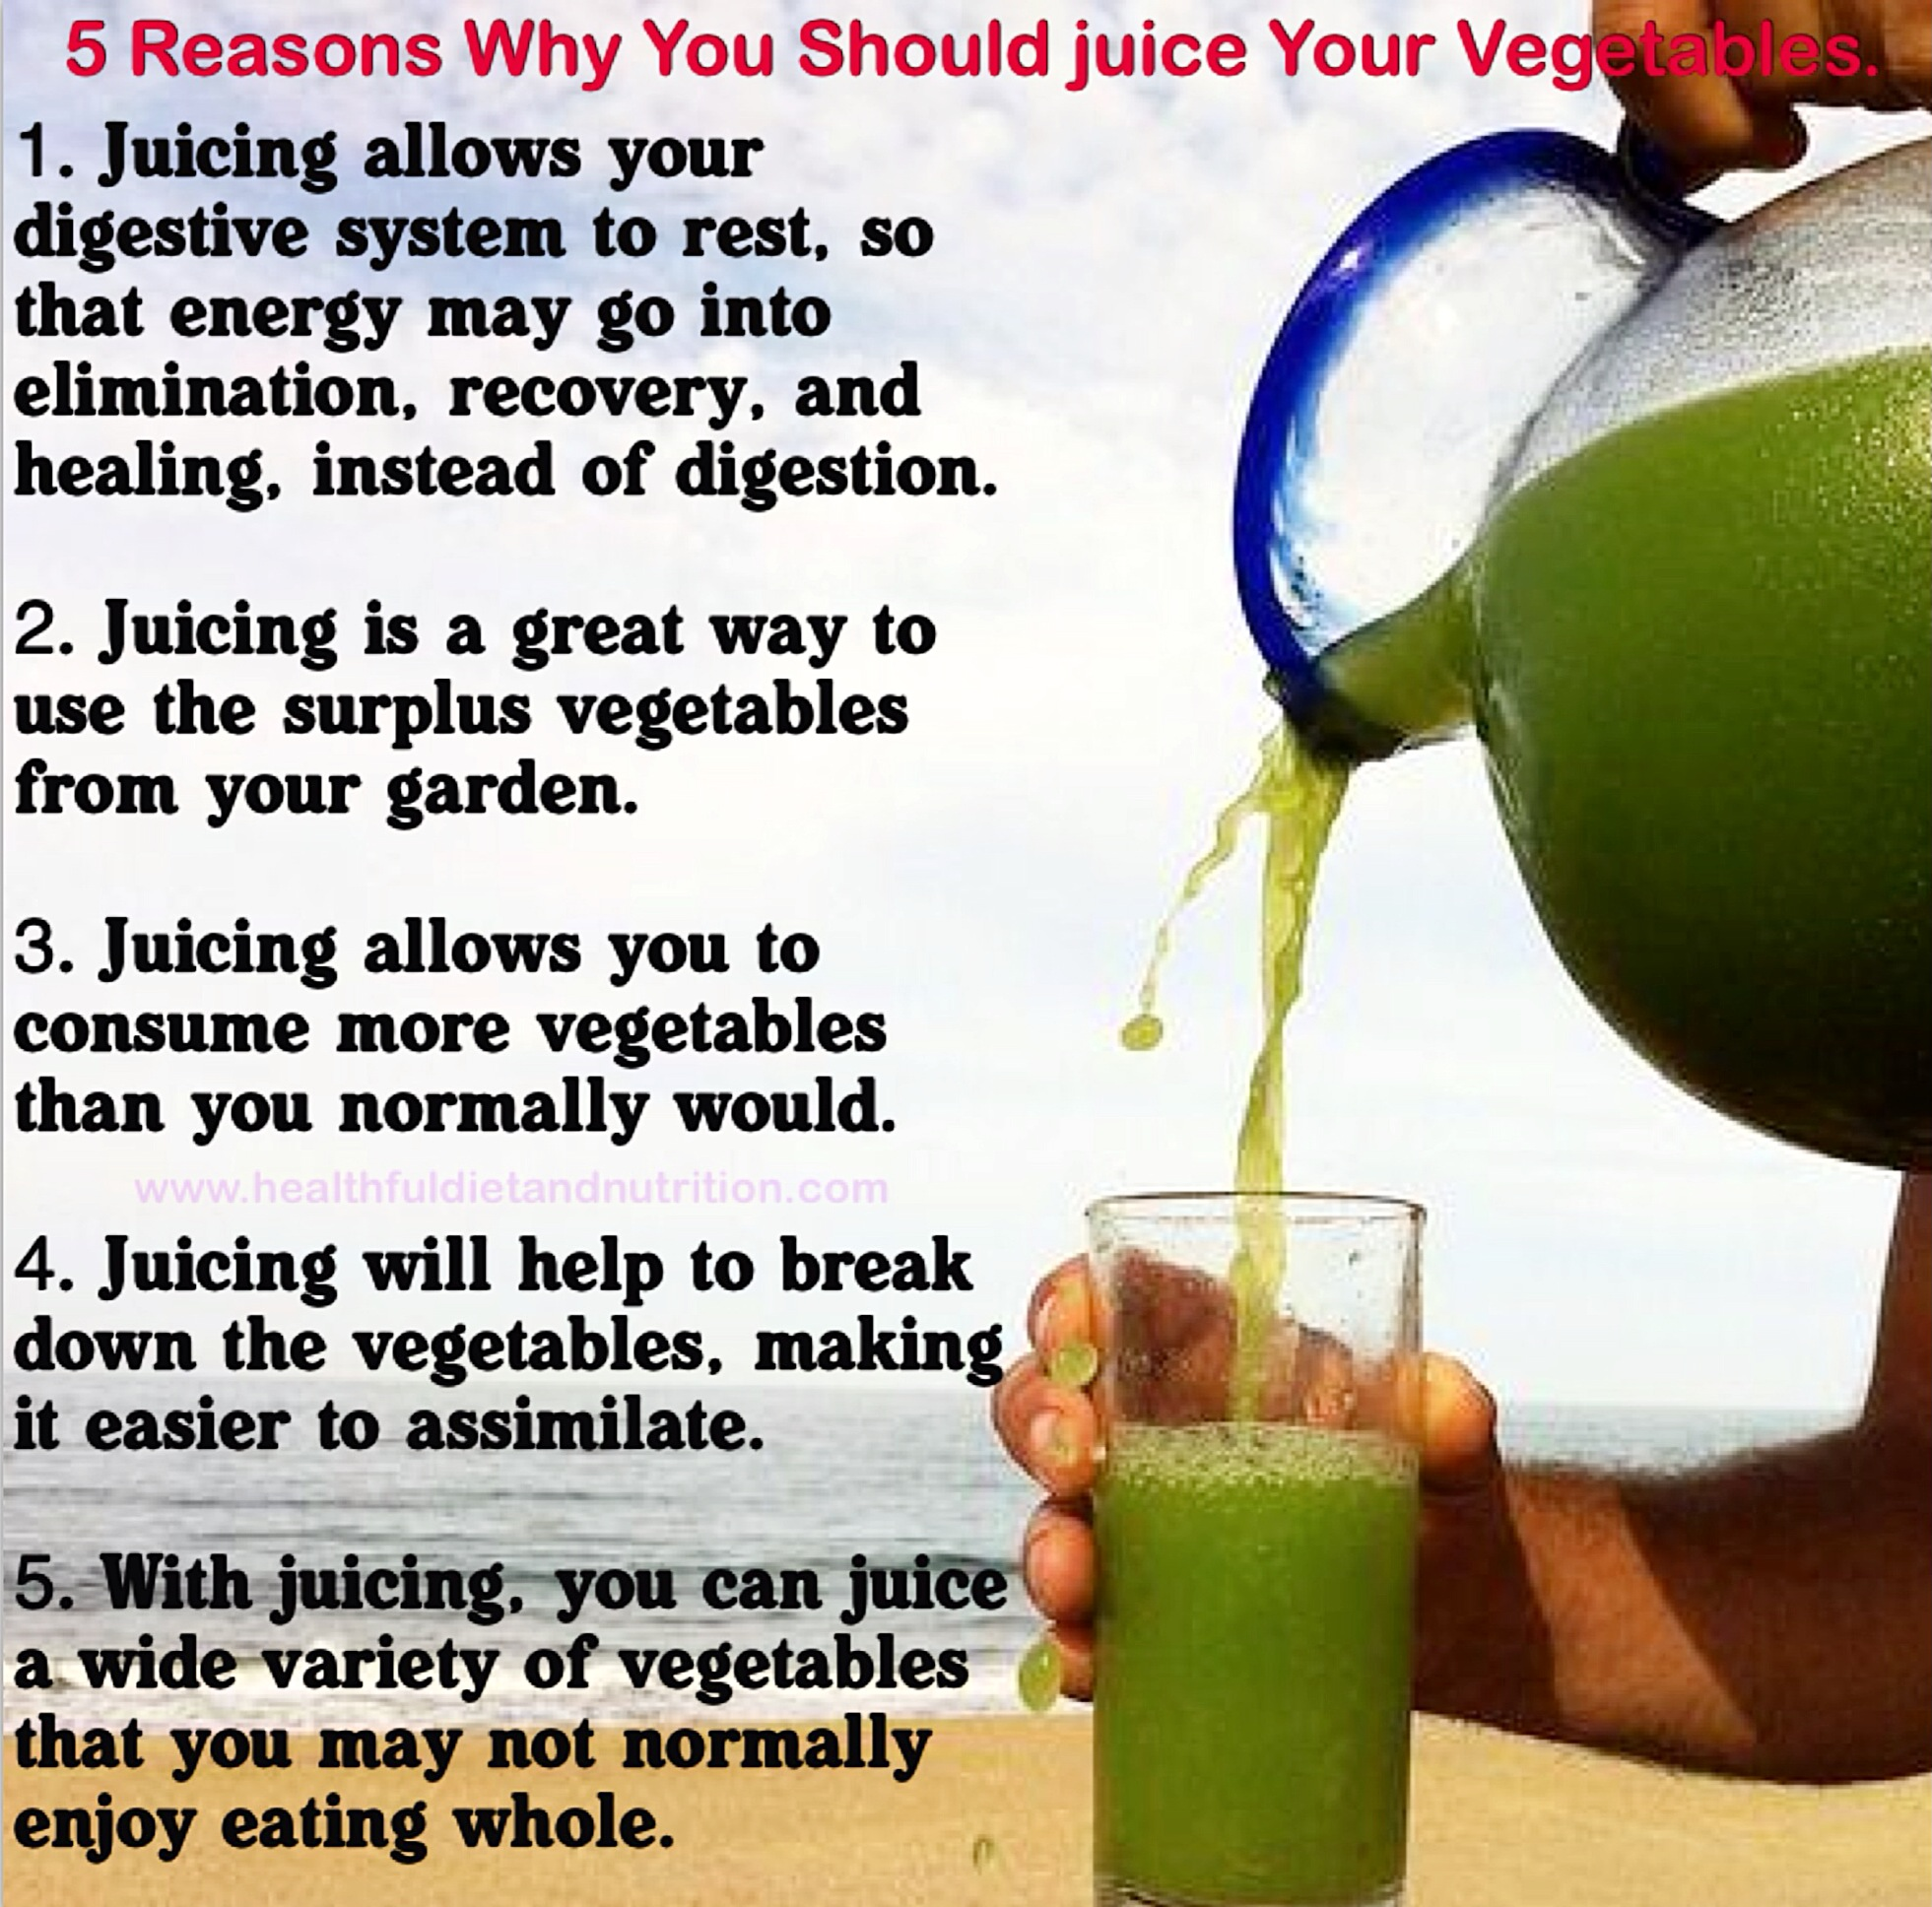 5 Reasons Why You Should Juice Your Vegetables